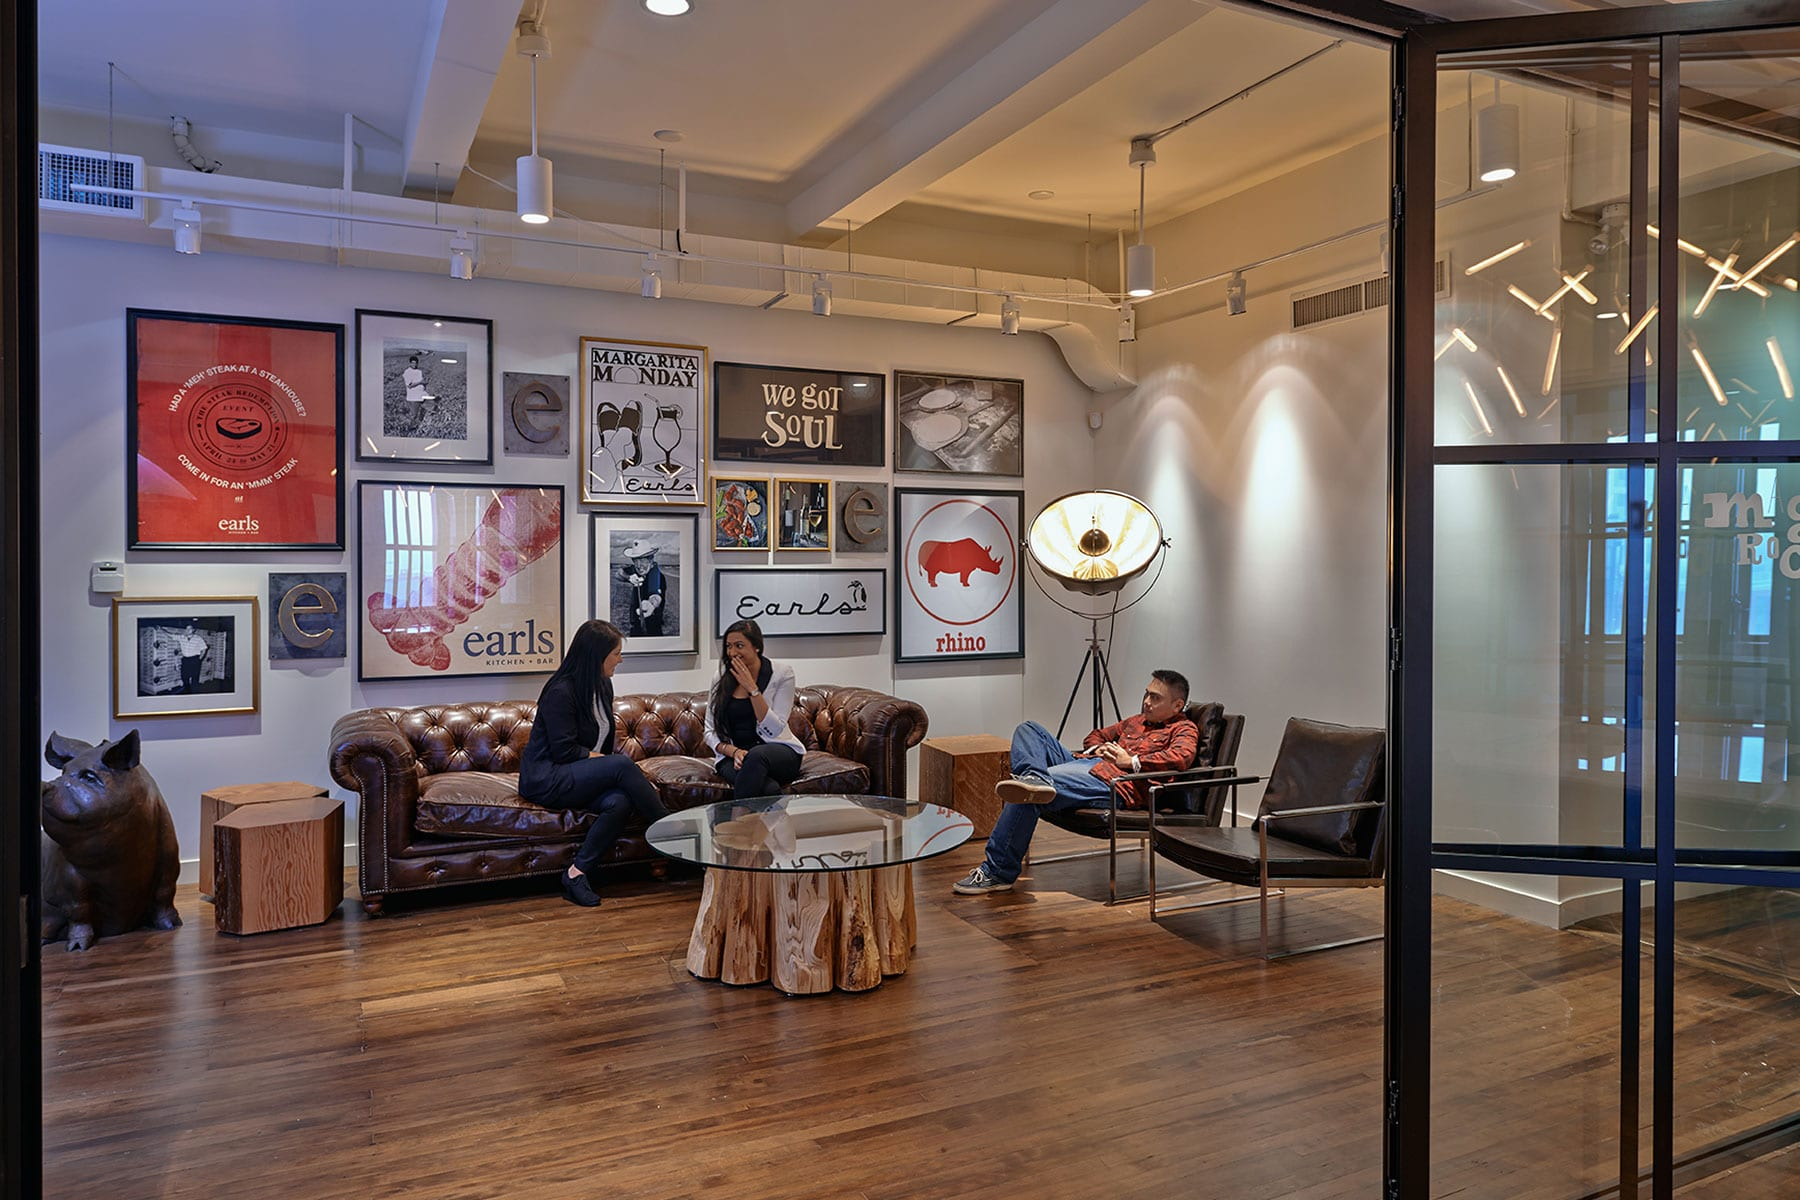 earls head office lounge with wall full of framed photos and quotes that reflect Earls' brand and culture